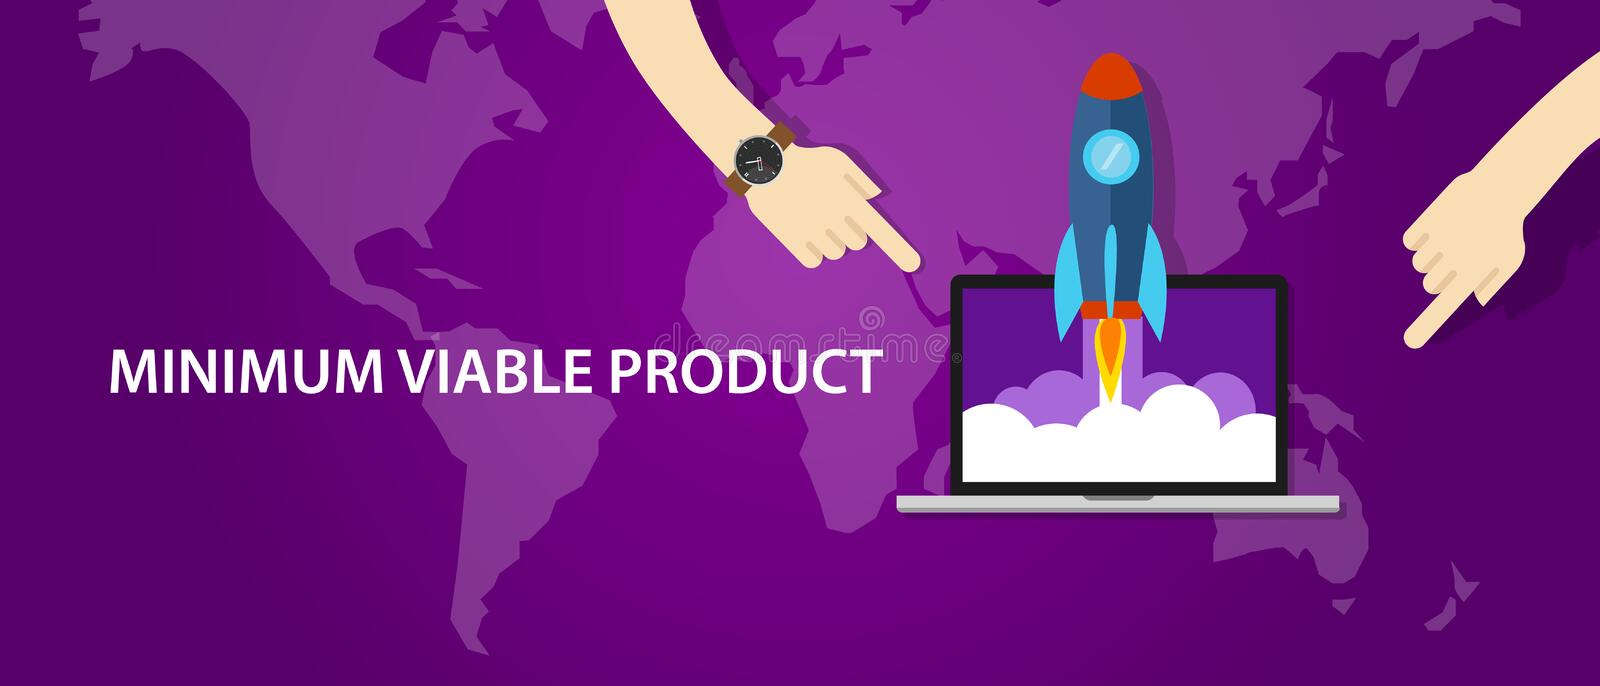 MVP minimum viable product rocket launch stock illustration